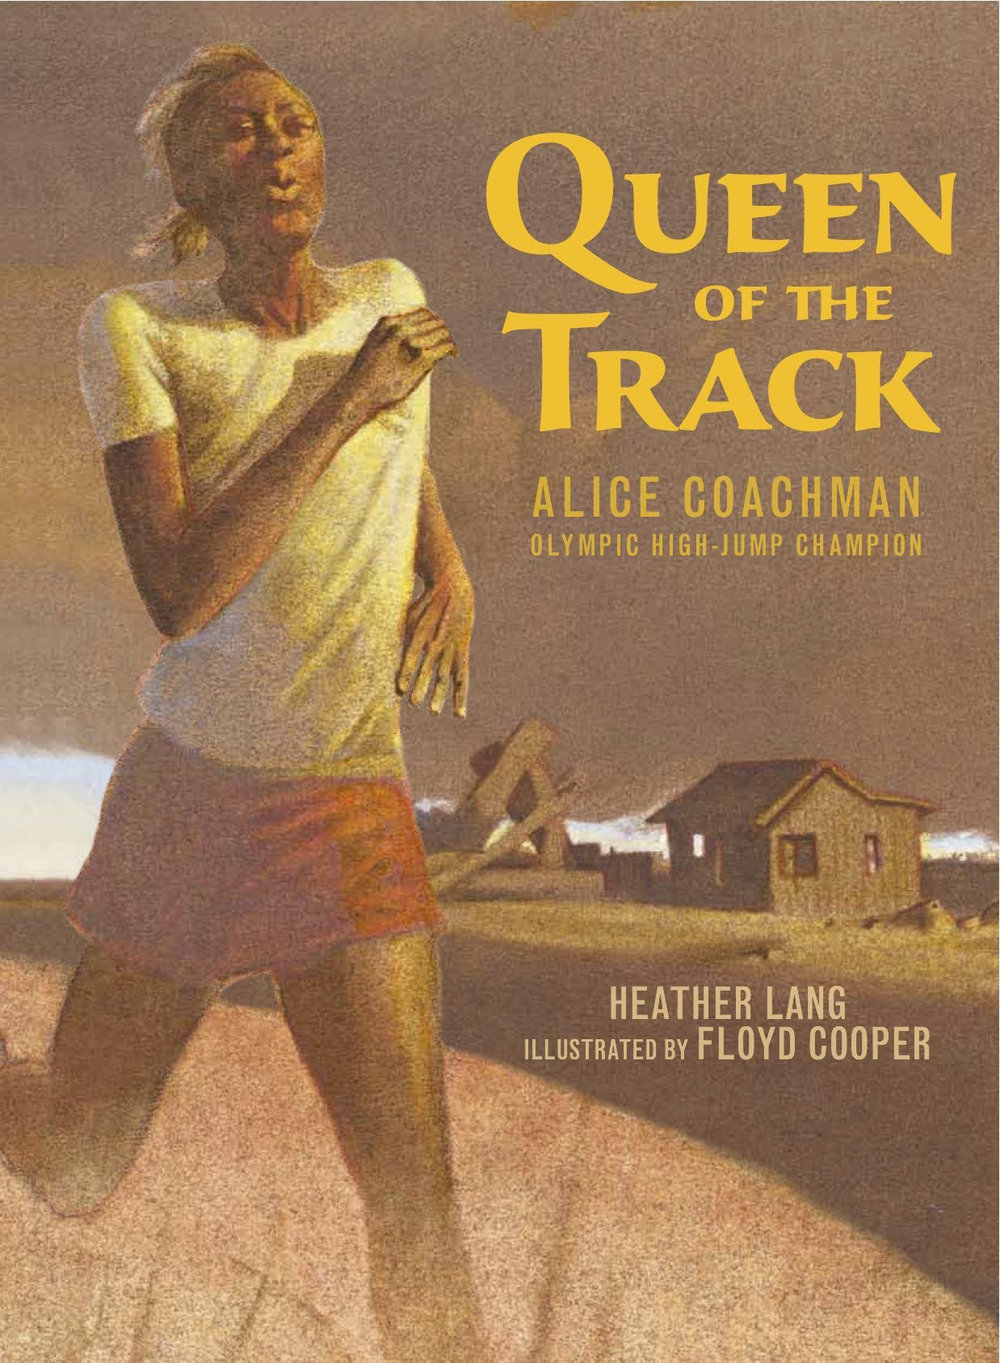 Queen of the Track (Lang) cover.jpg